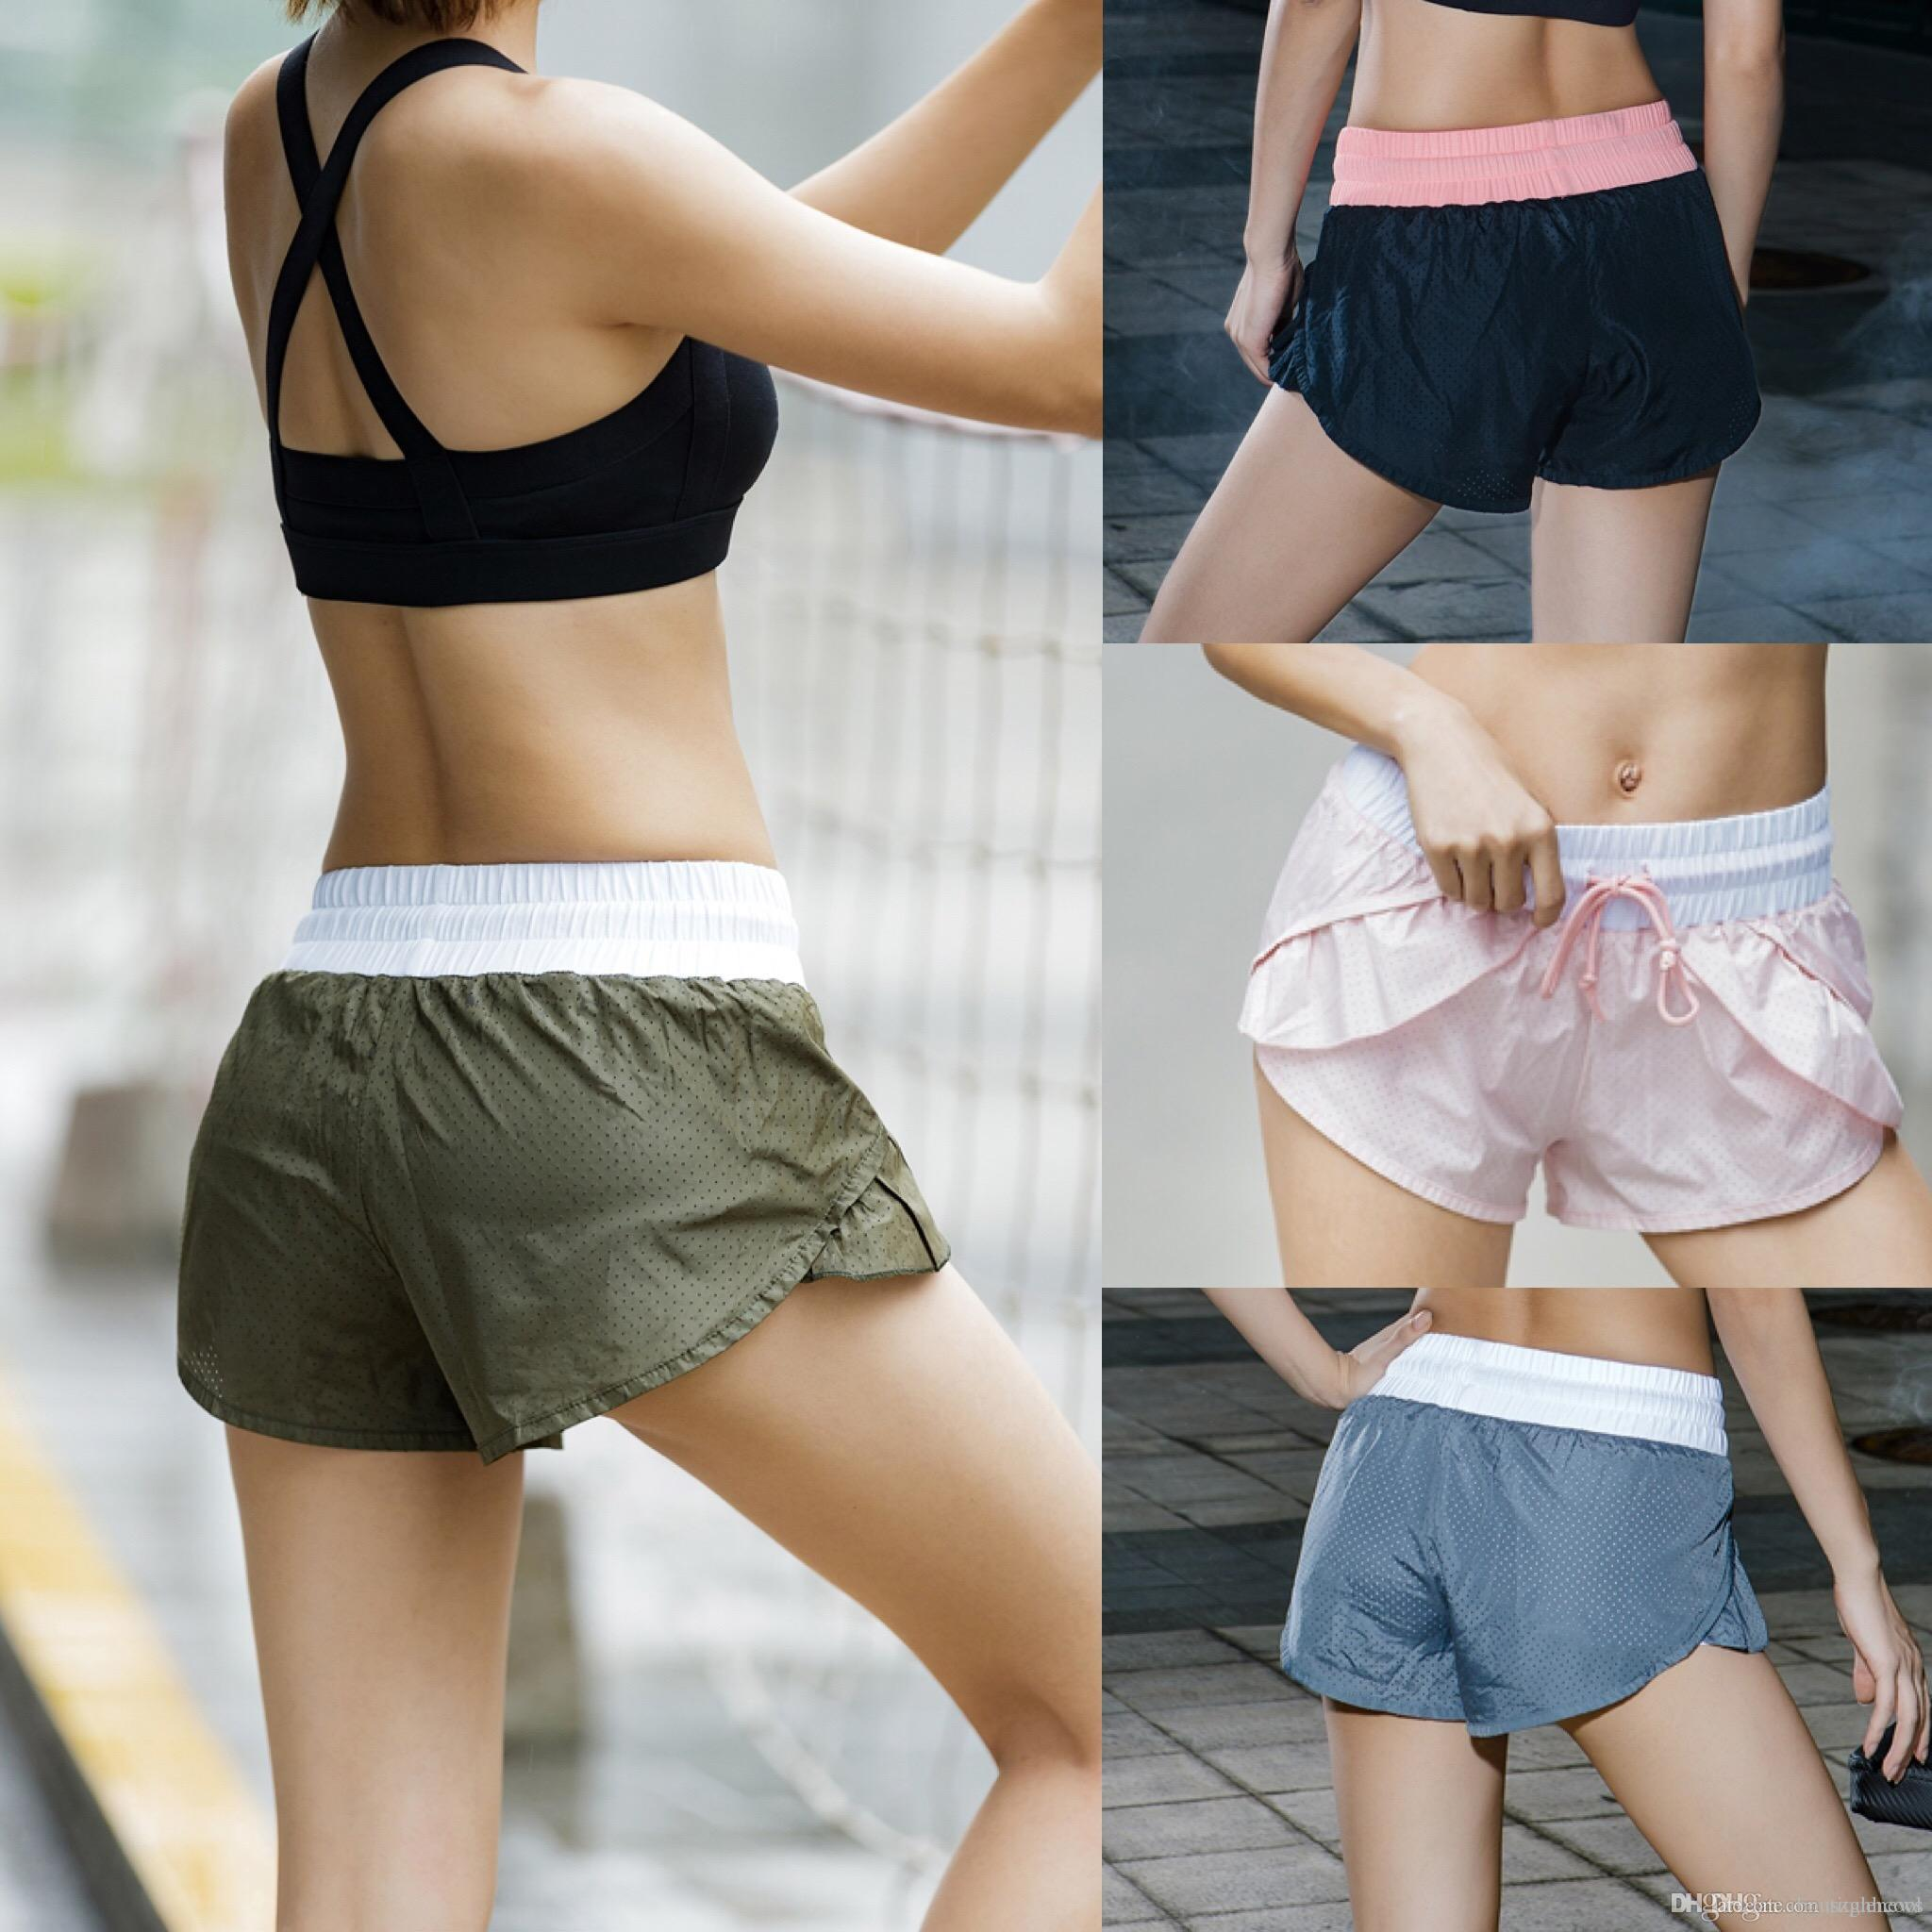 e006b58cc230a 2019 Wholesale Women Sexy Hip Push Up Shorts Fitness Workout Yoga Shorts  New Gym Jogging Shorts Sports Leggings Short Style From Iboutiquenews, ...